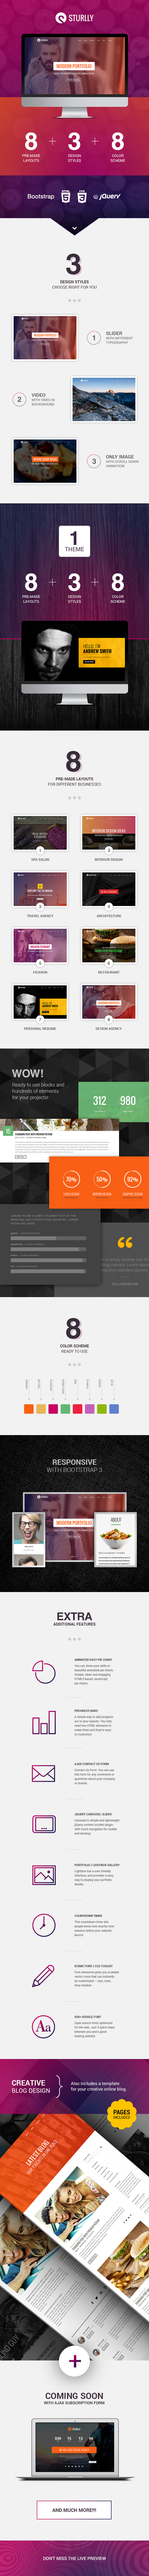 Sturlly Responsive One Page Multipurpose Template By Themezaa